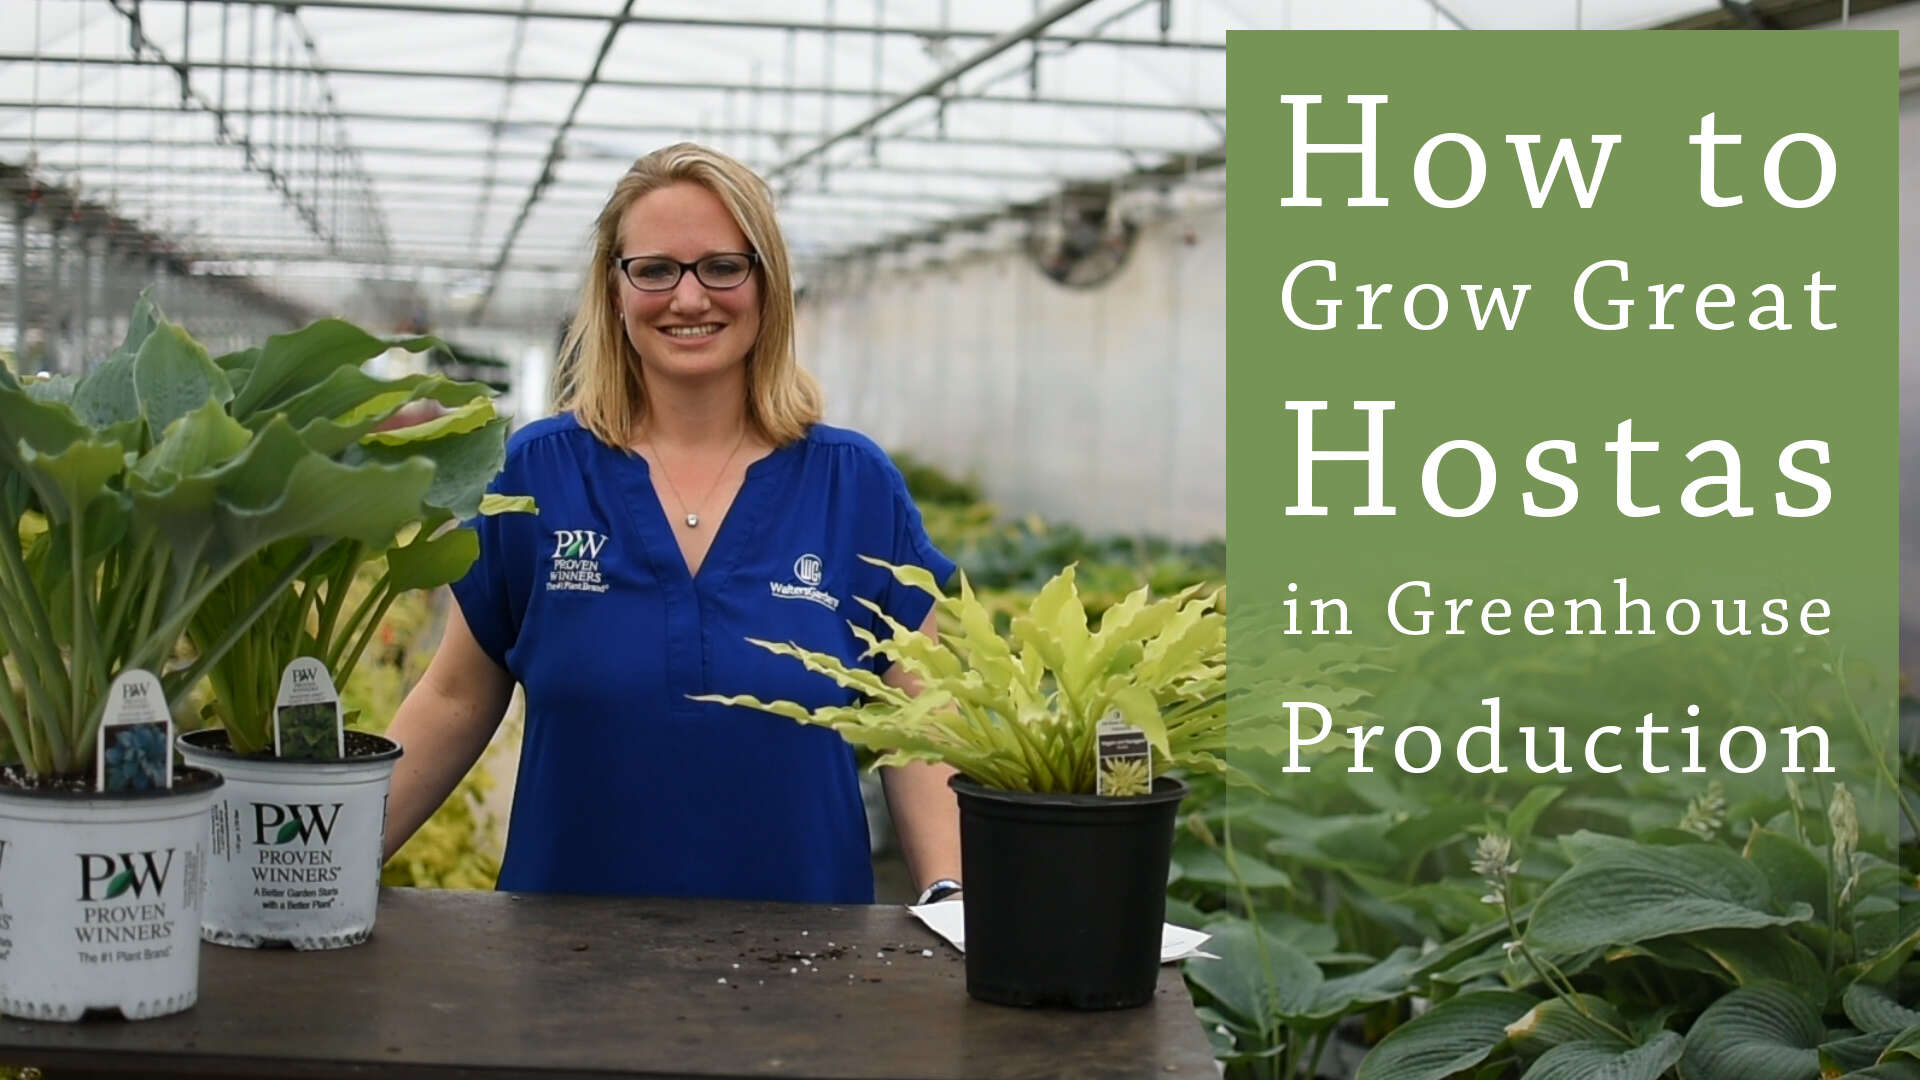 Hosta Greenhouse Production Tips